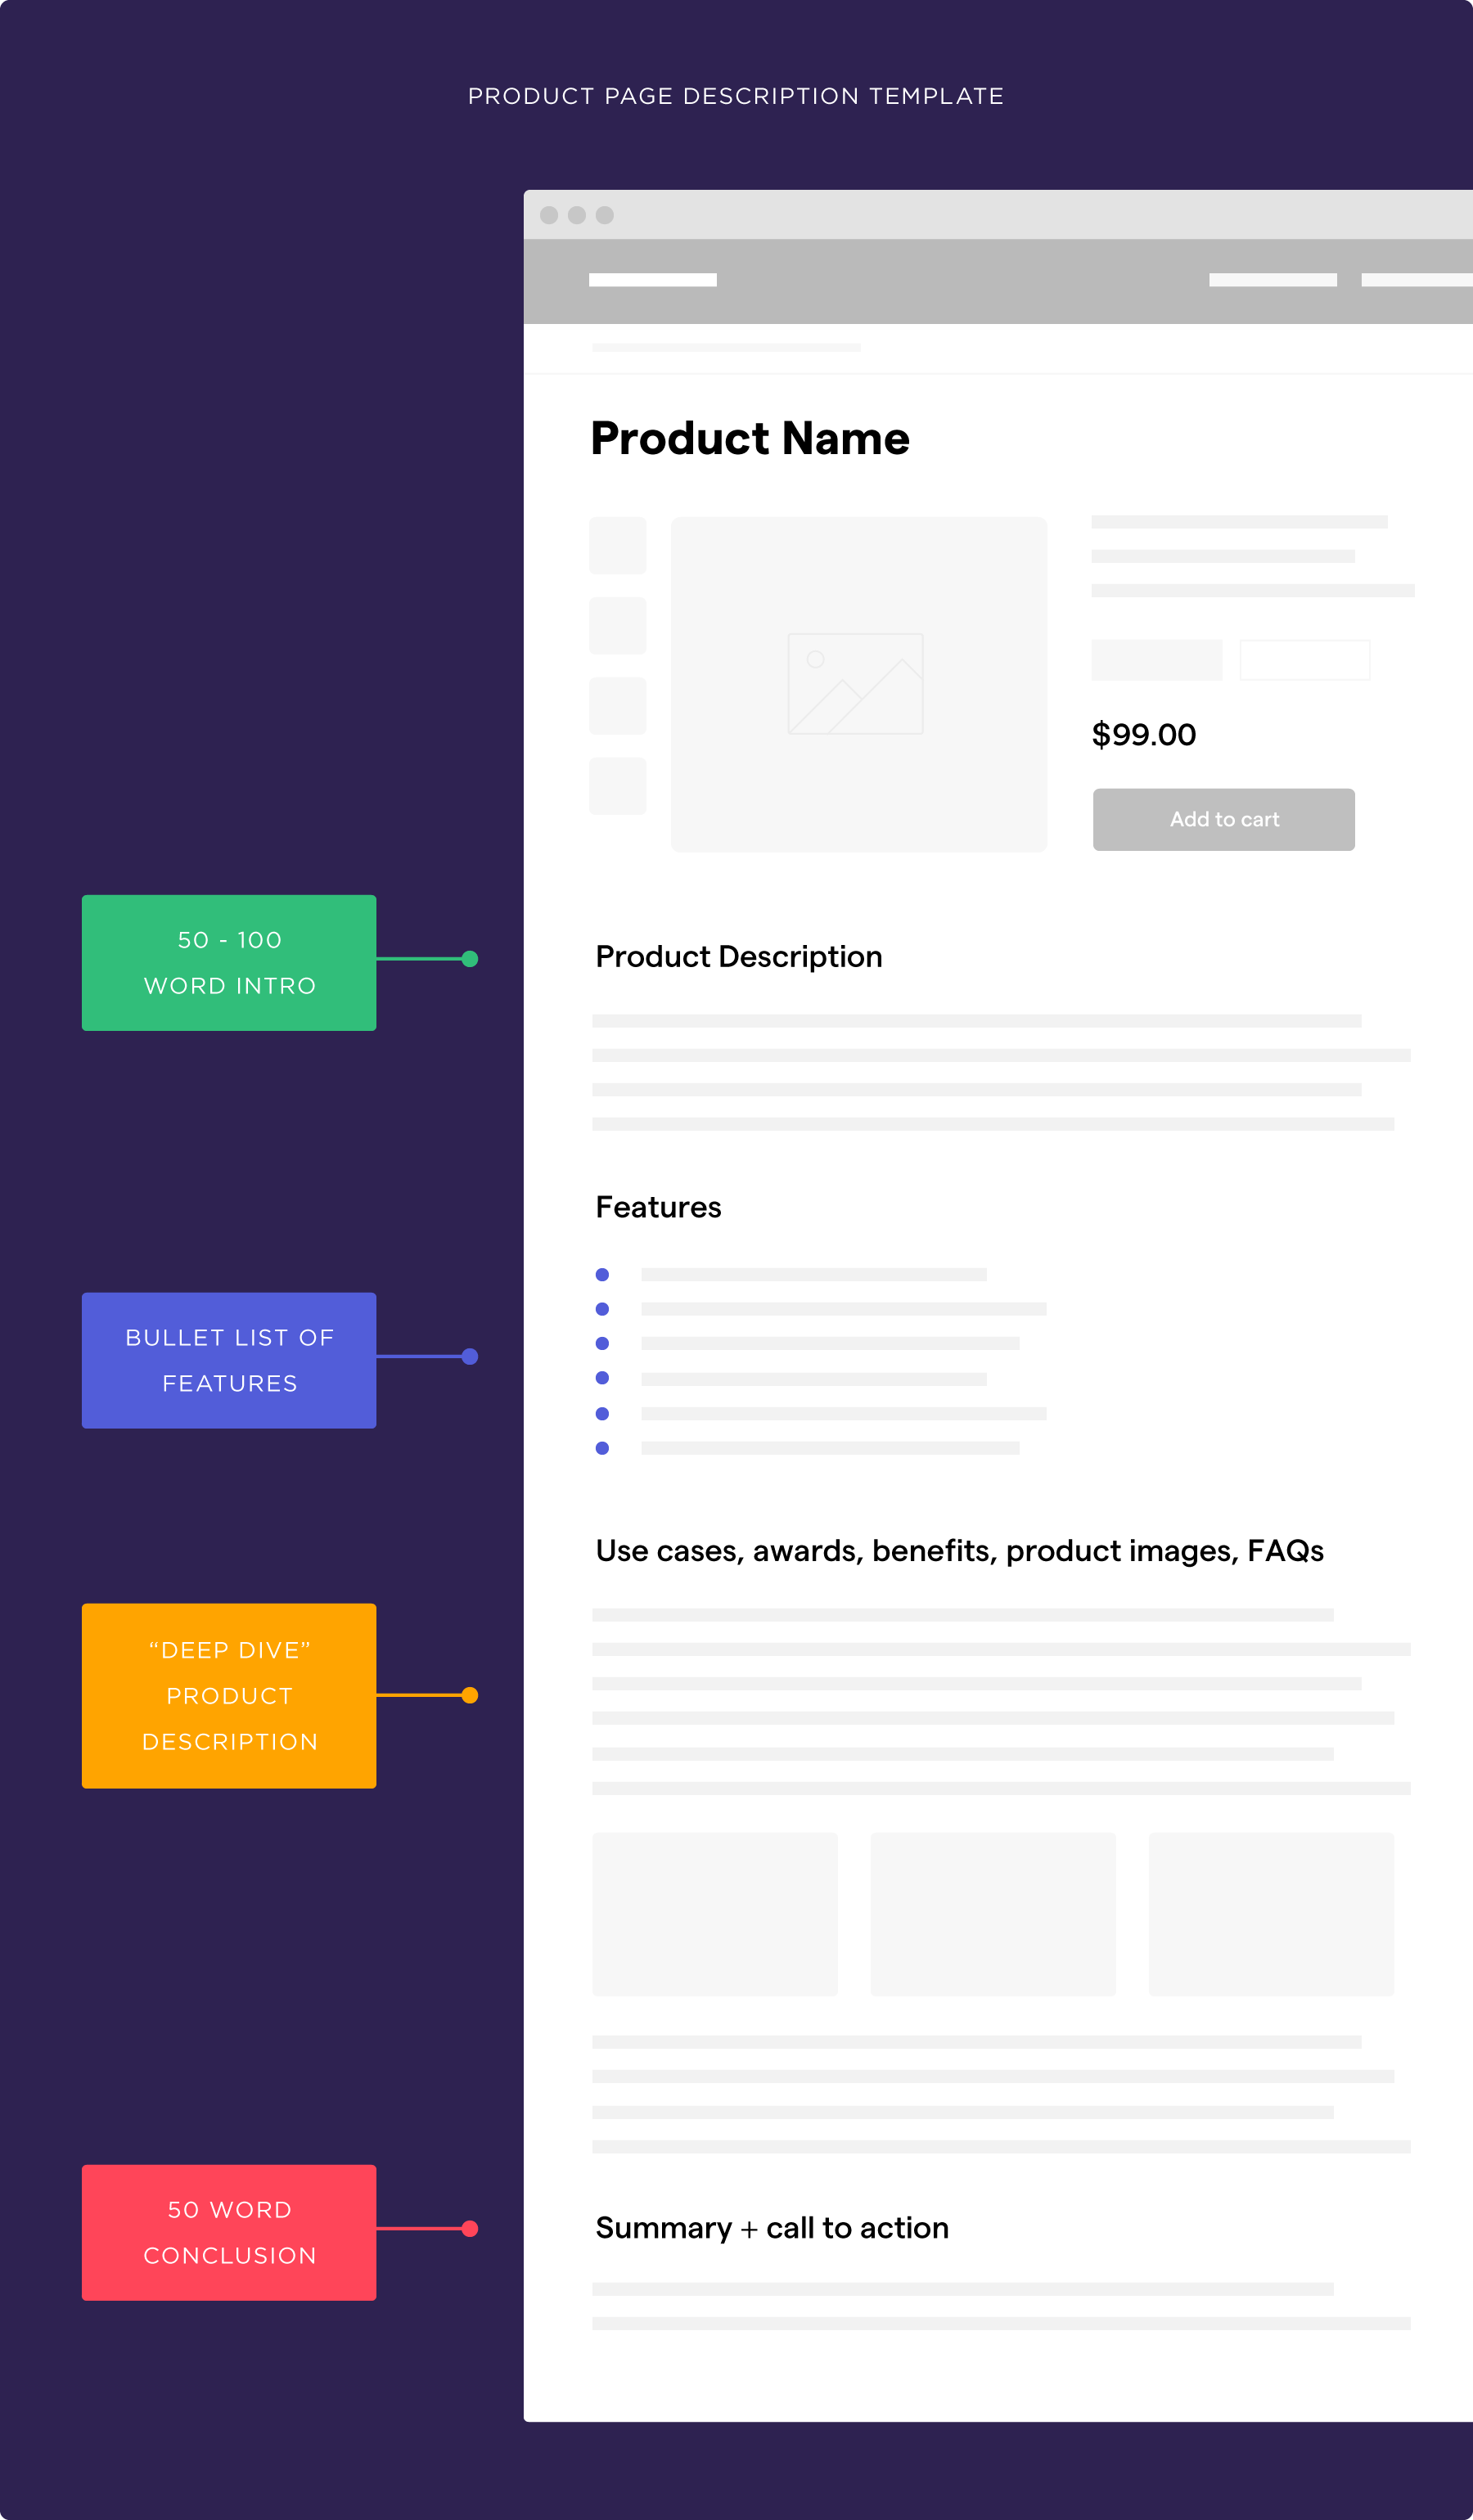 Example template for a product page description